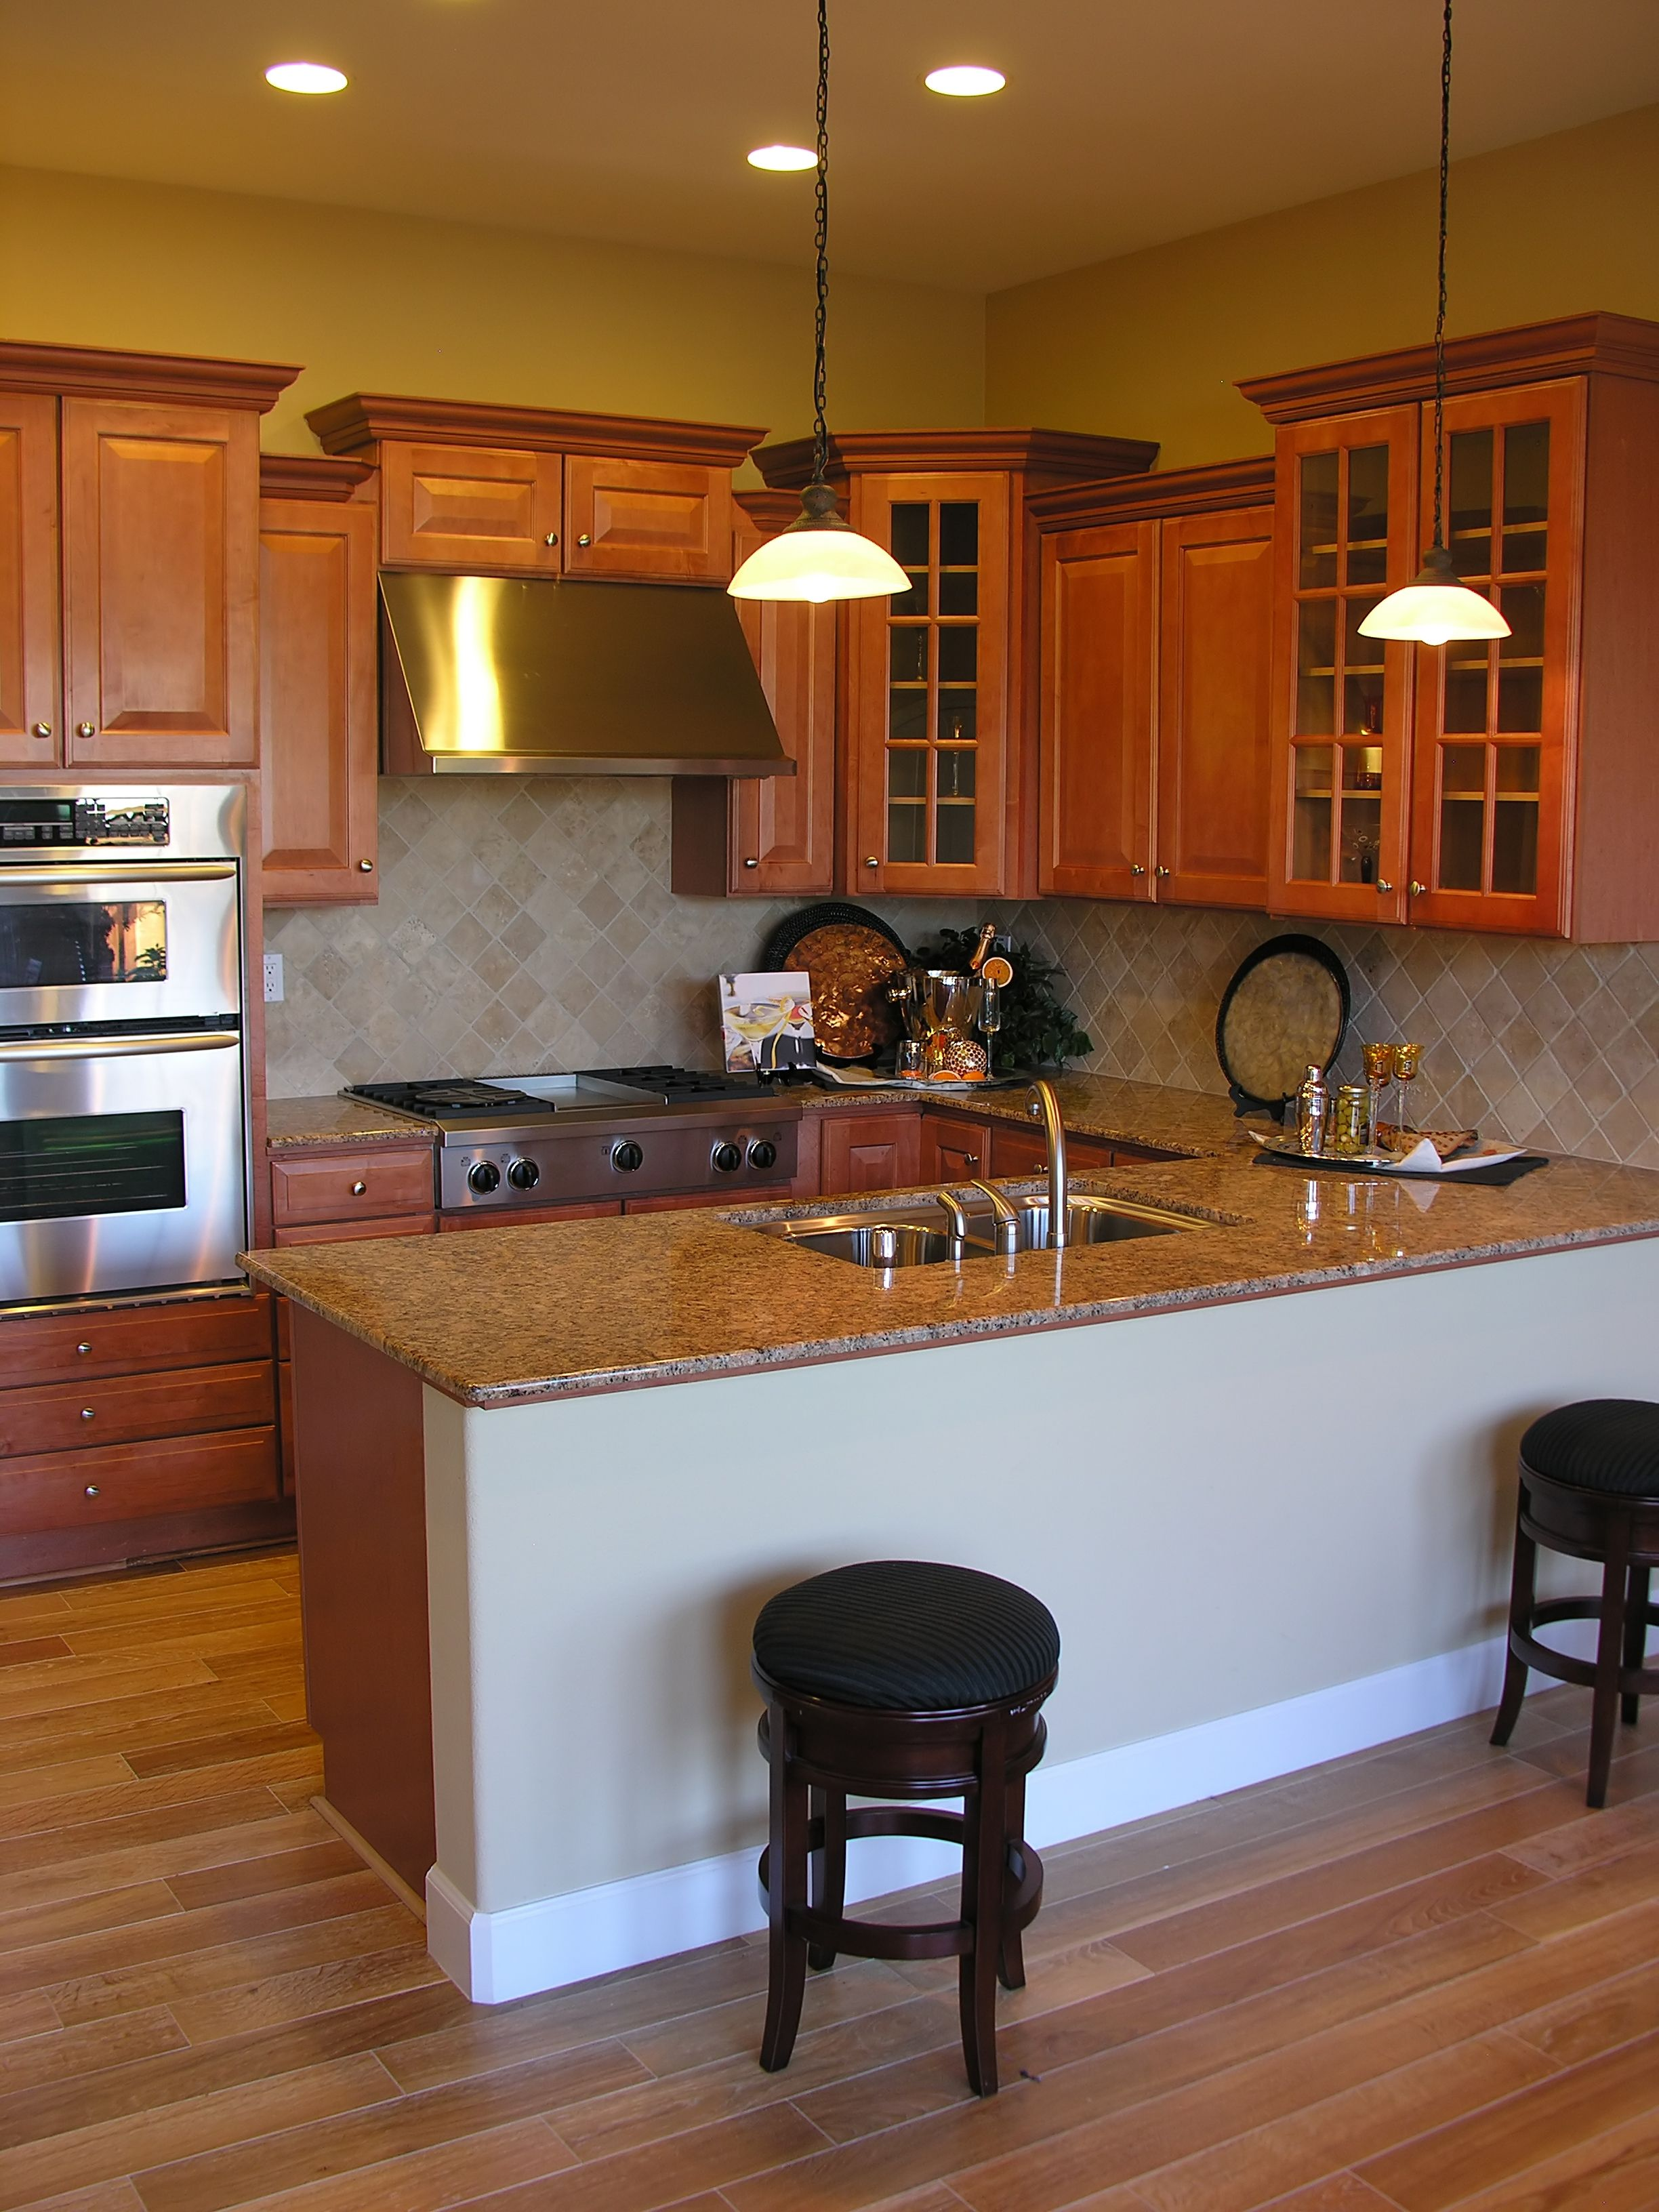 Cabinet Refacing Kitchen Remodeling Services Orange County Staggered Kitchen Cabinets Brown Kitchens Brown Kitchen Cabinets